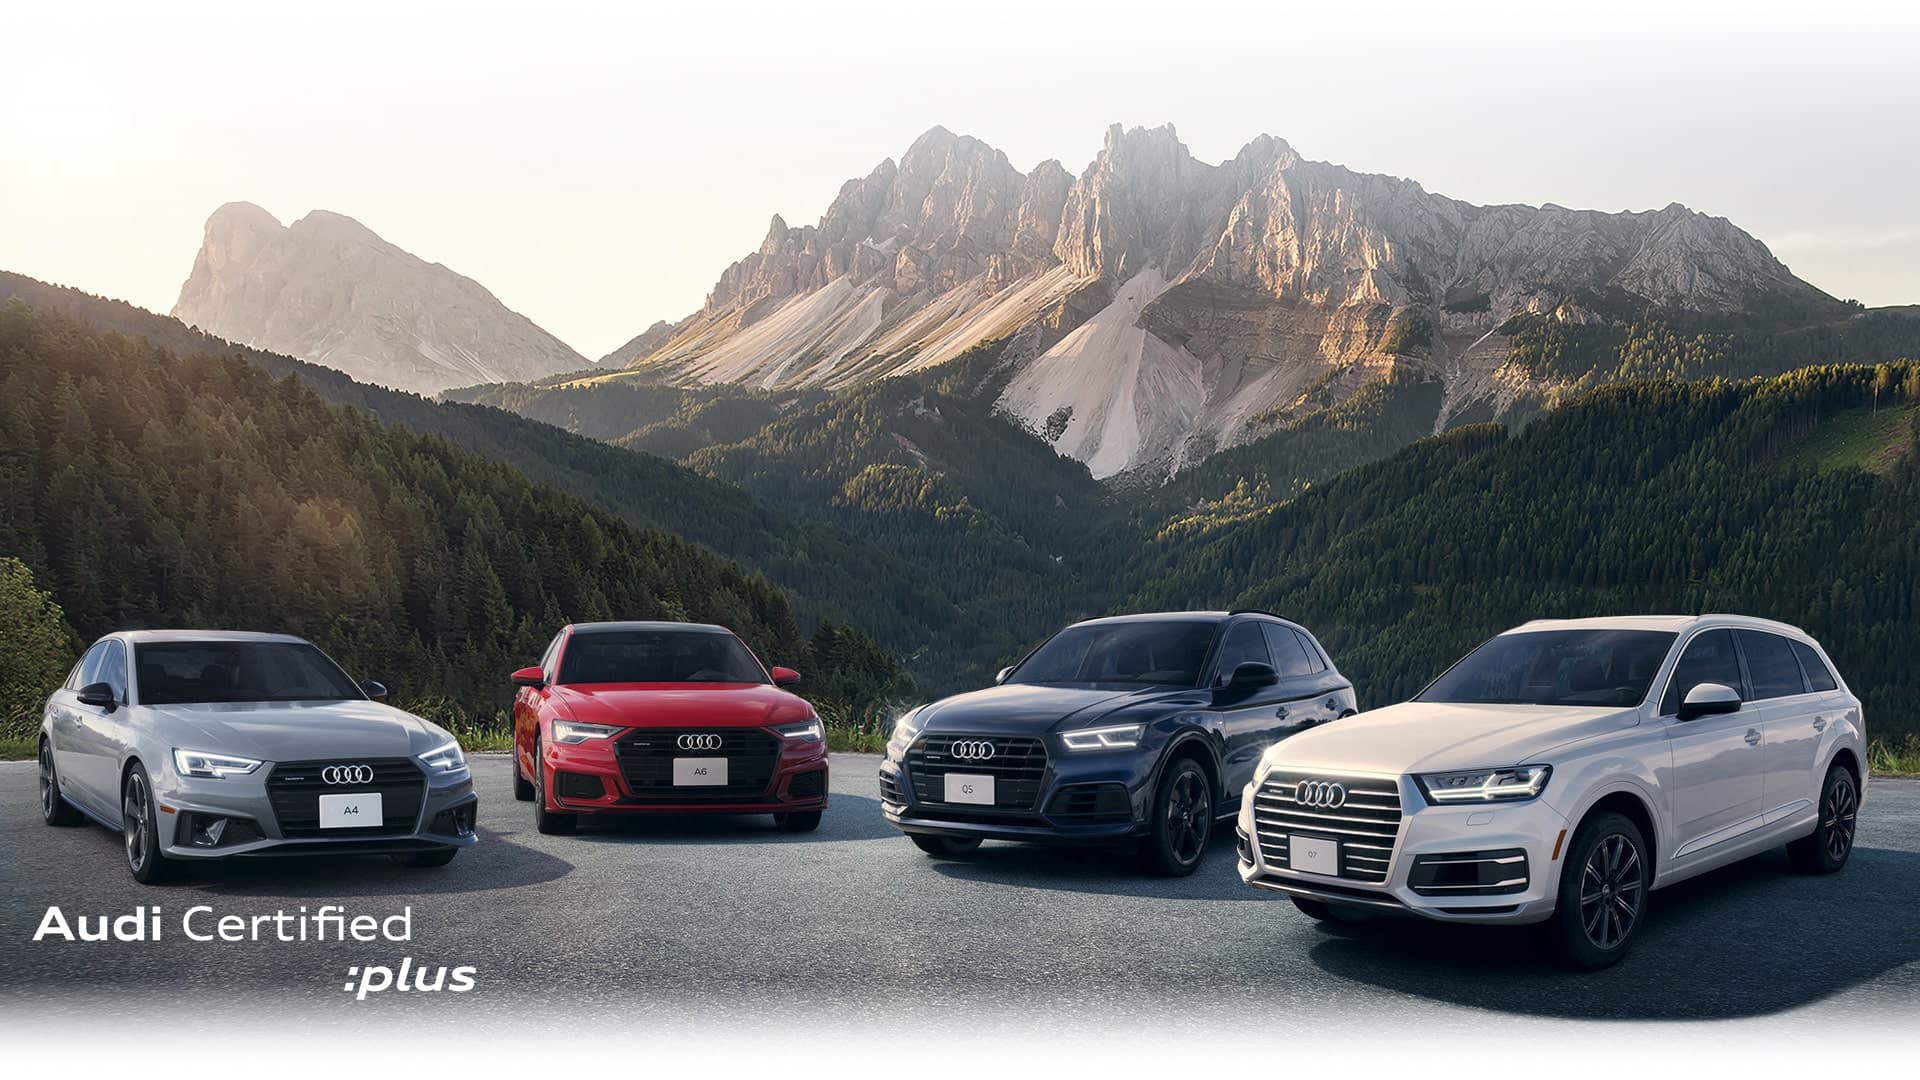 Why Buy Audi Certified :plus ?